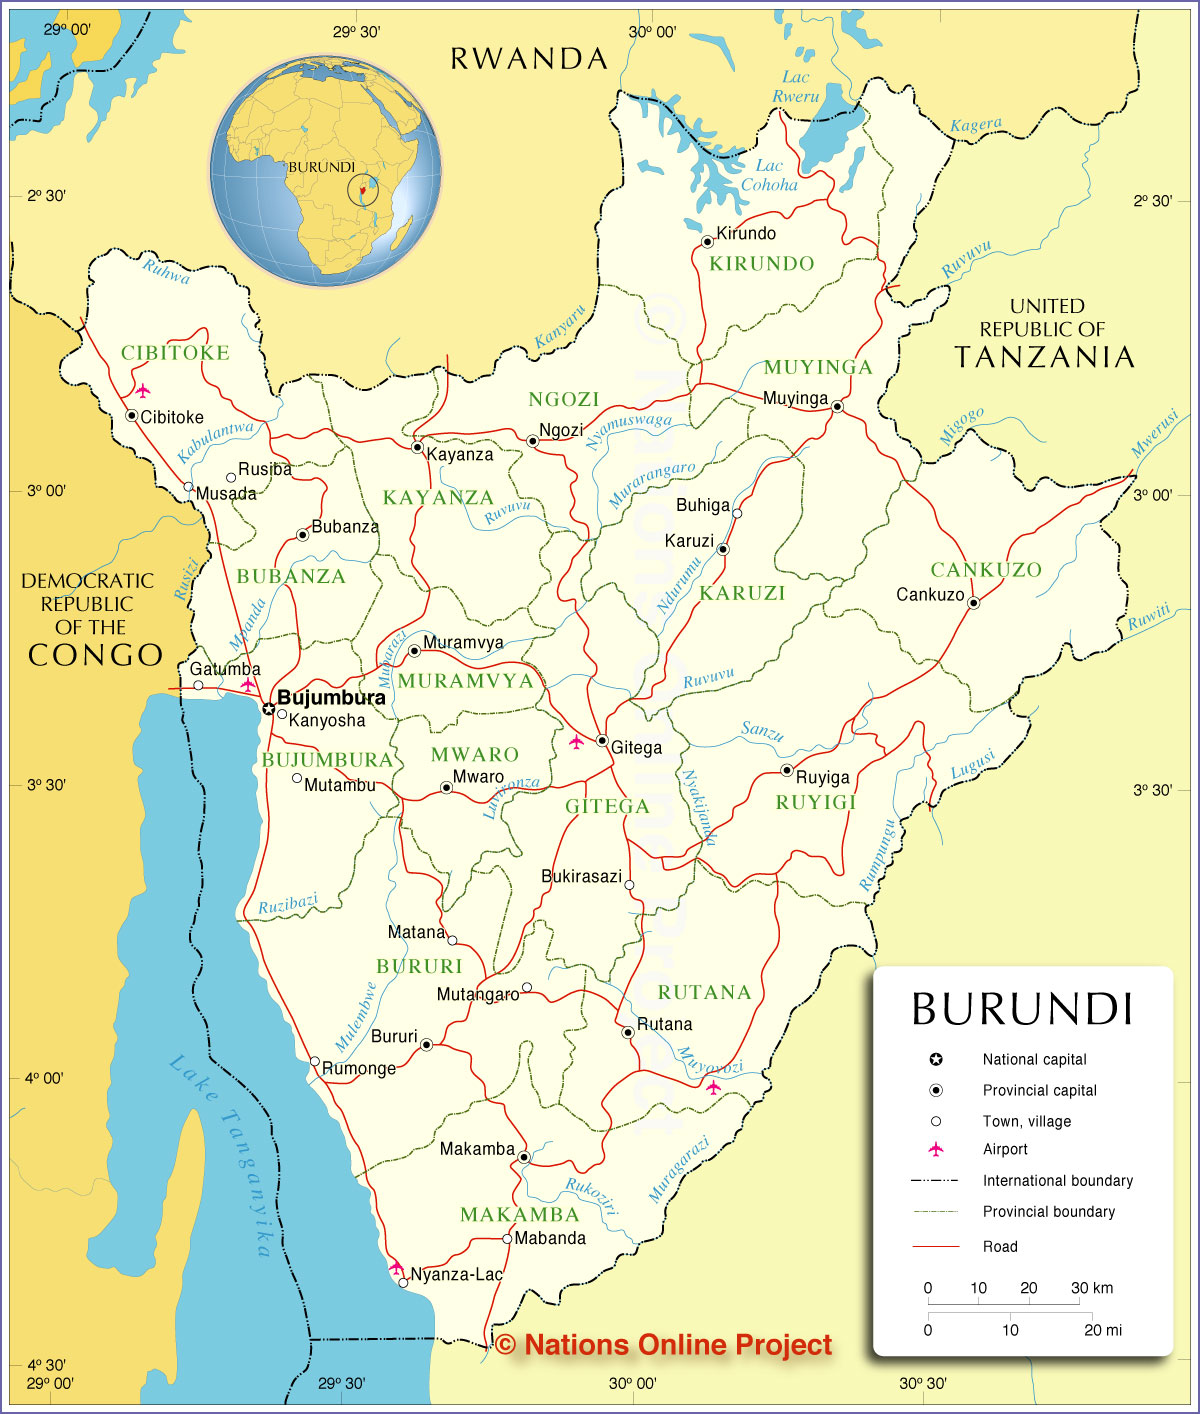 burundi - photo #5